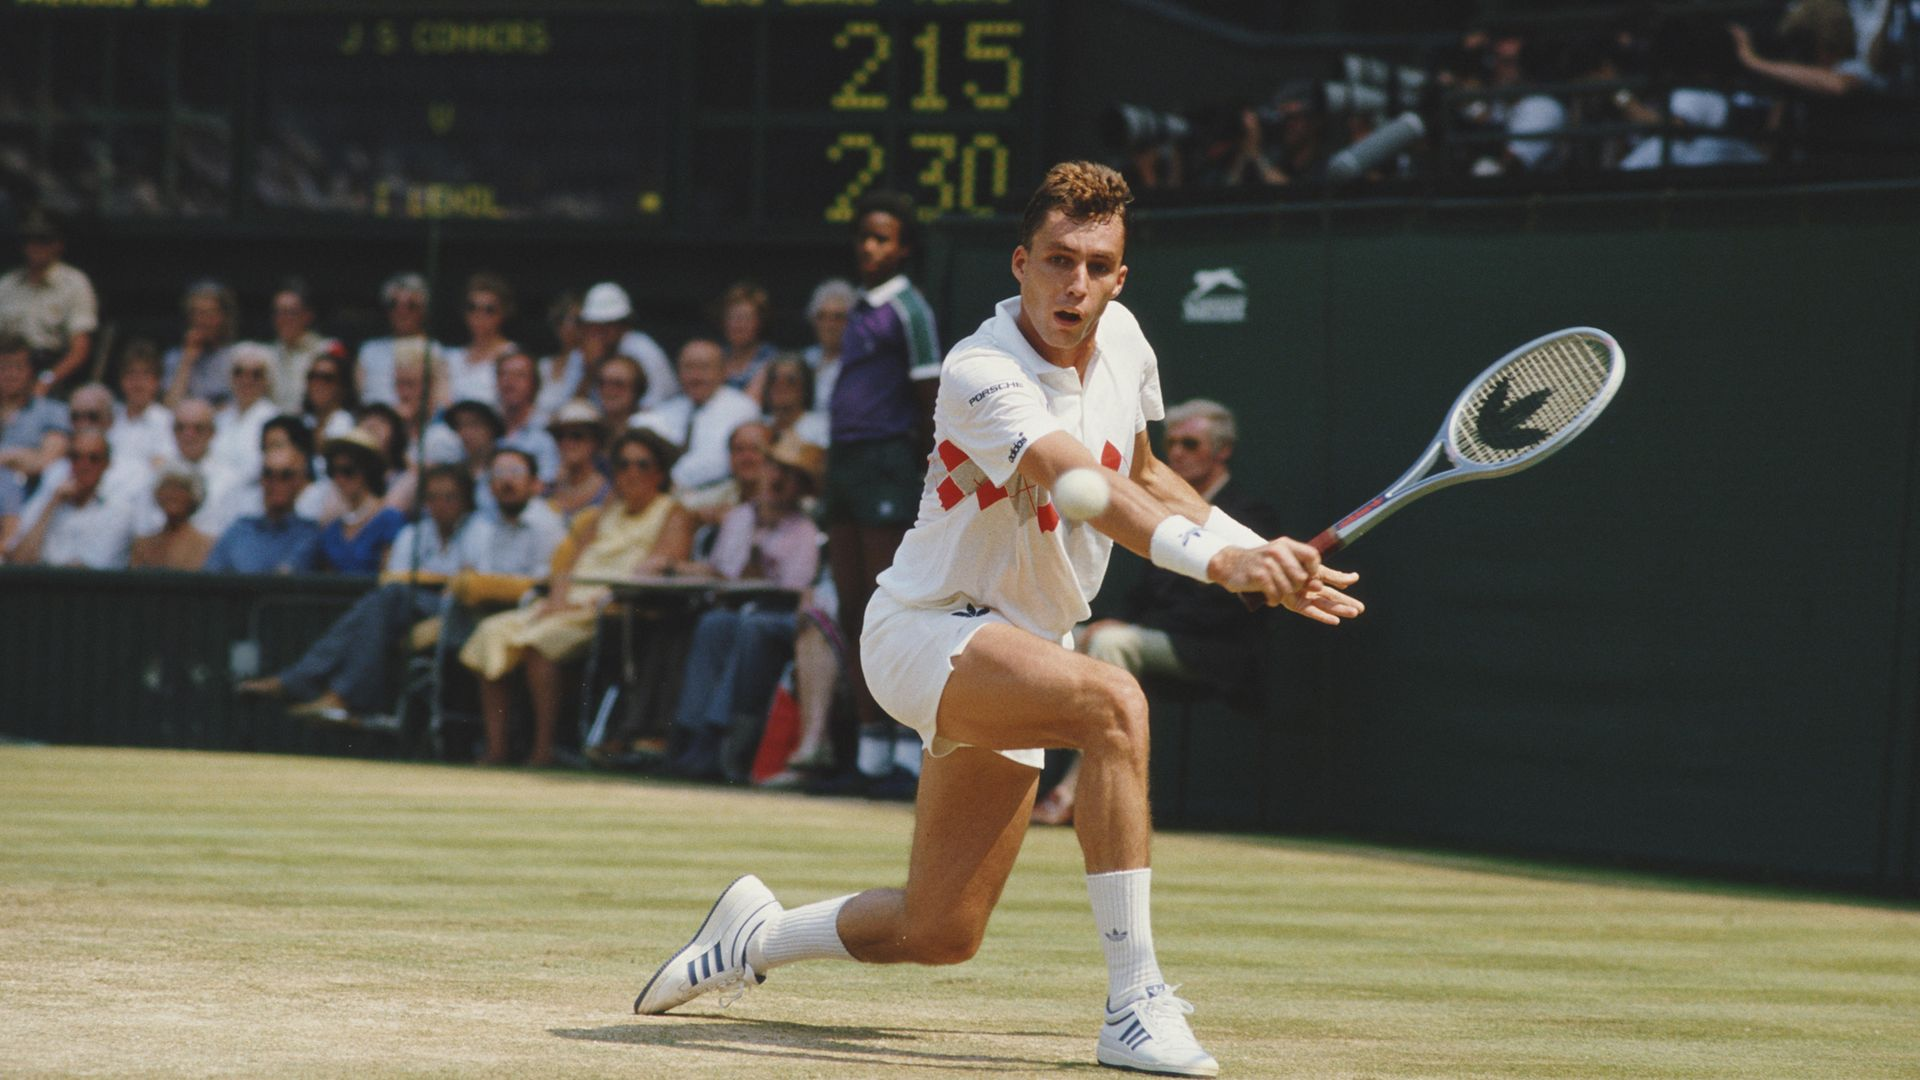 LENDL LOOKALIKE: Will Self's one time doppelganger Ivan Lendl playing at Wimbledon in 1984 - Credit: Getty Images